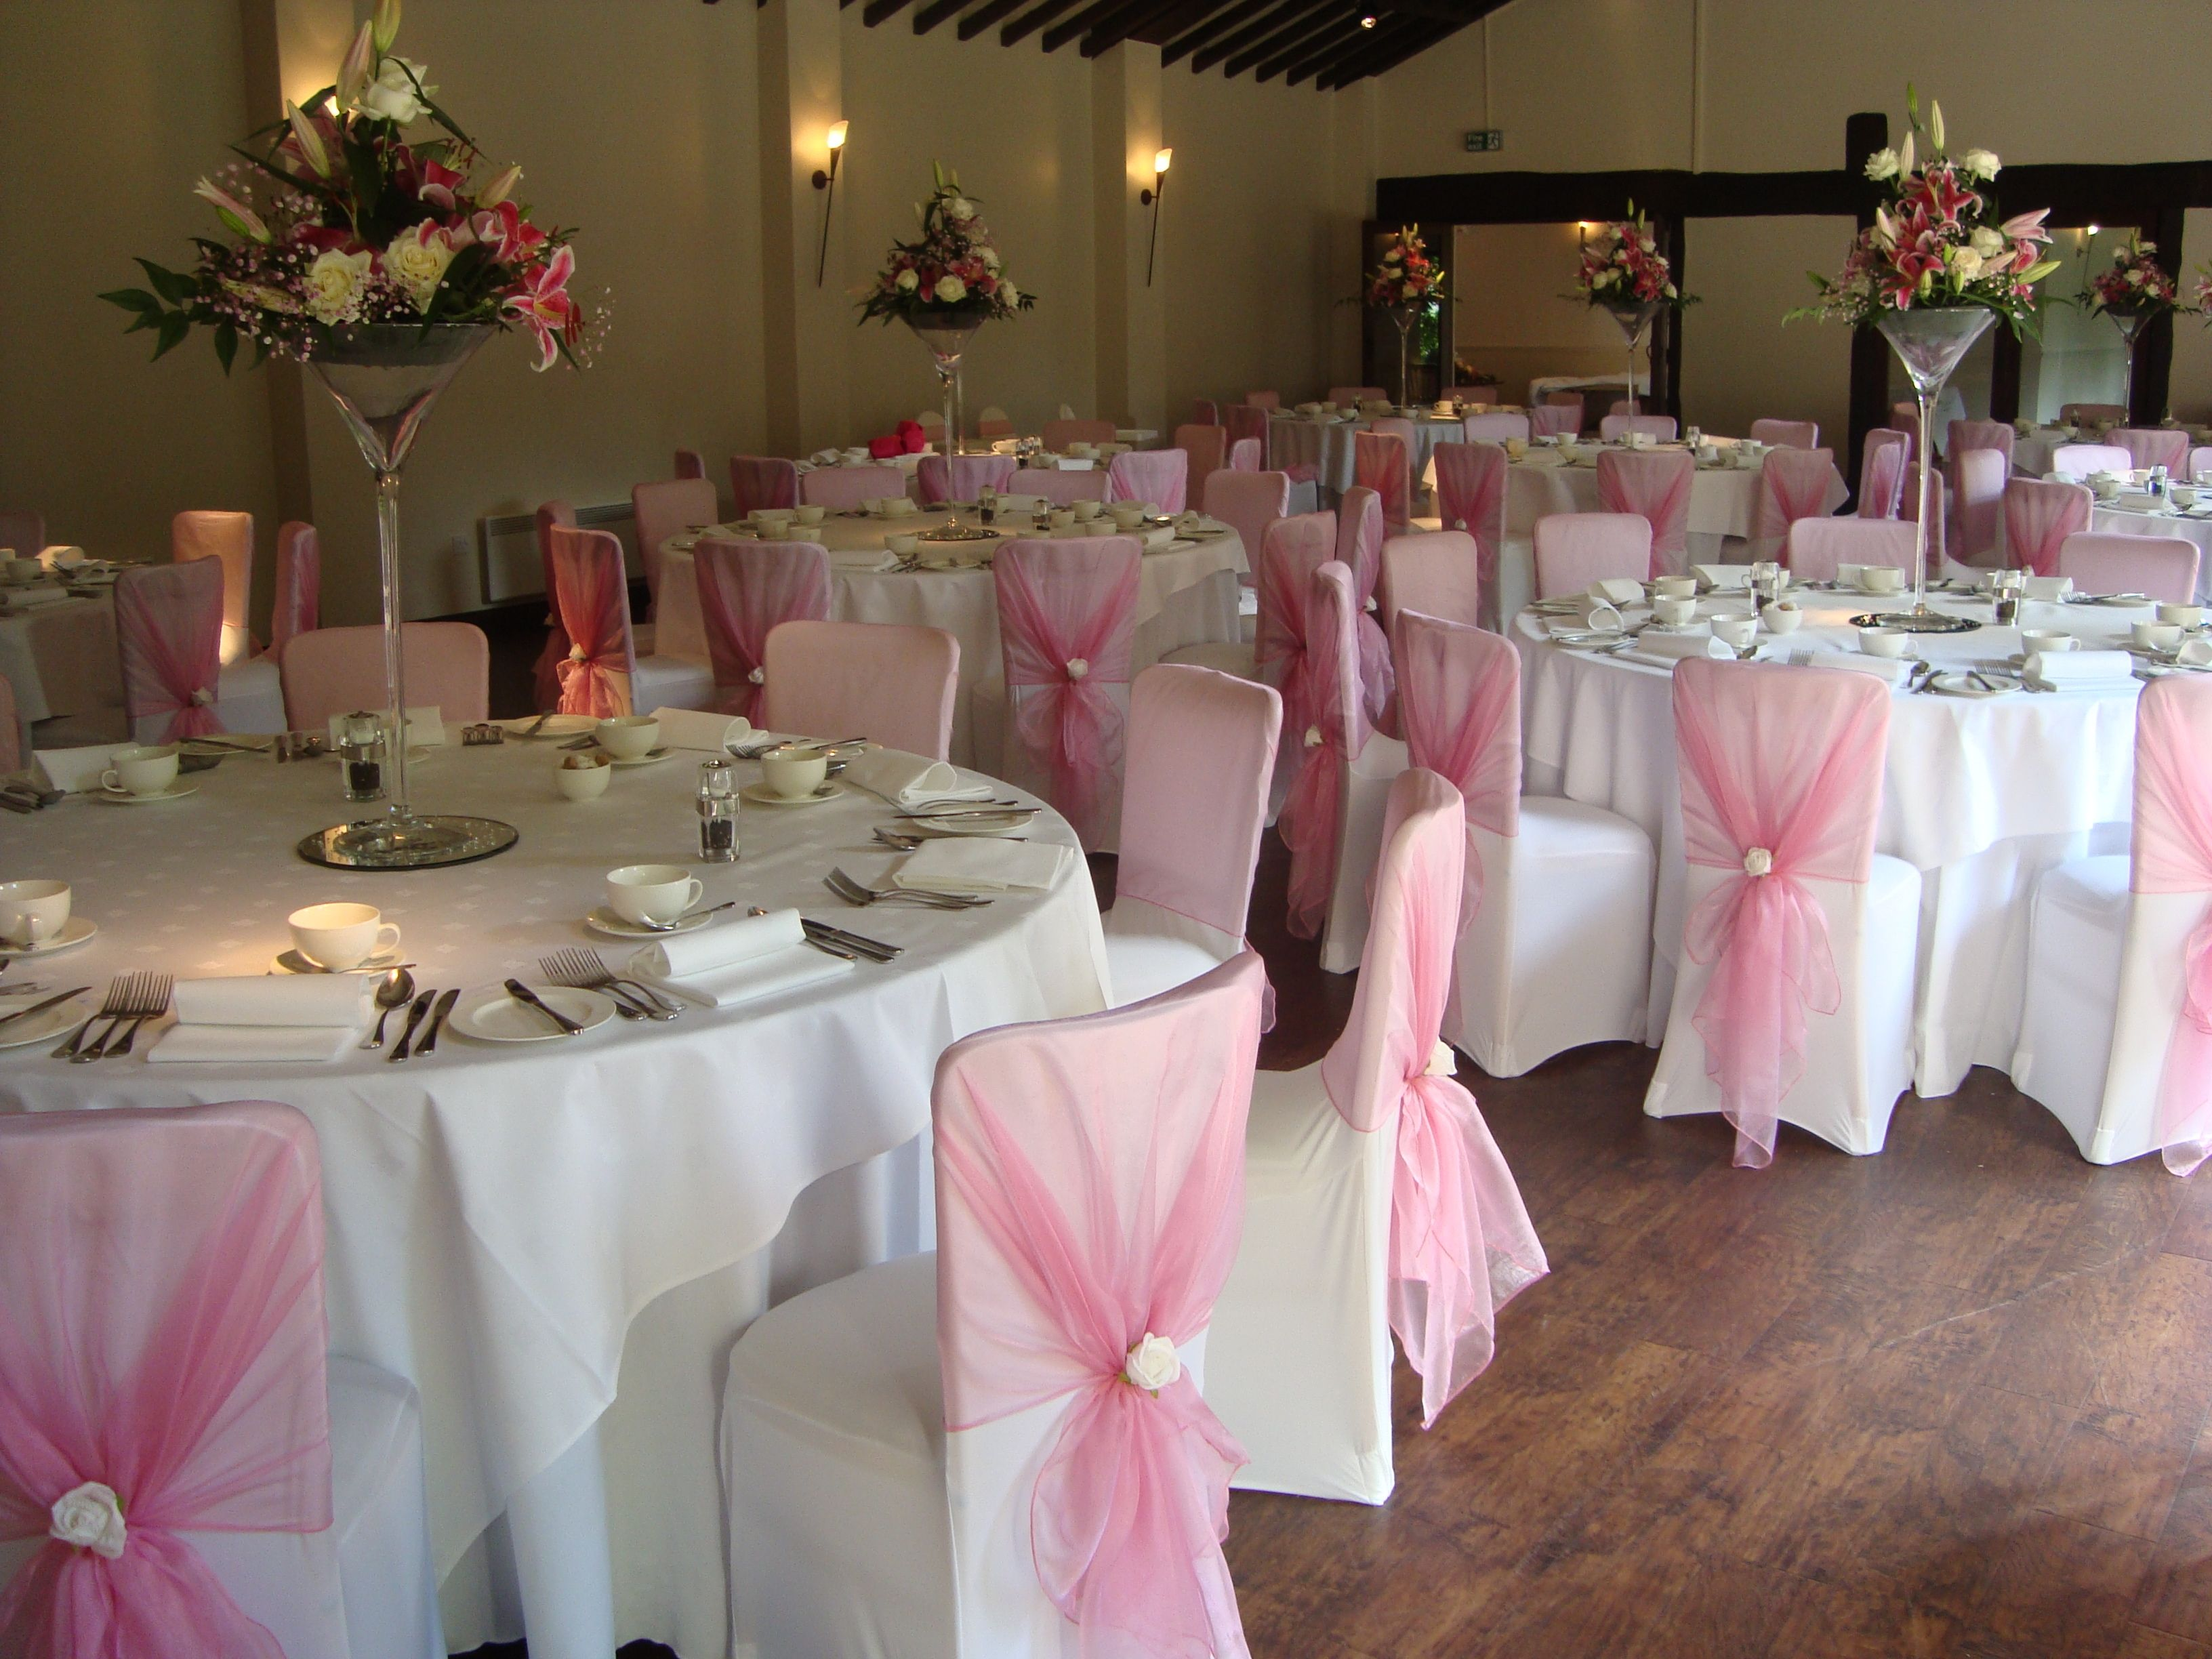 wedding chair covers tamworth kyoto design within reach for weddings